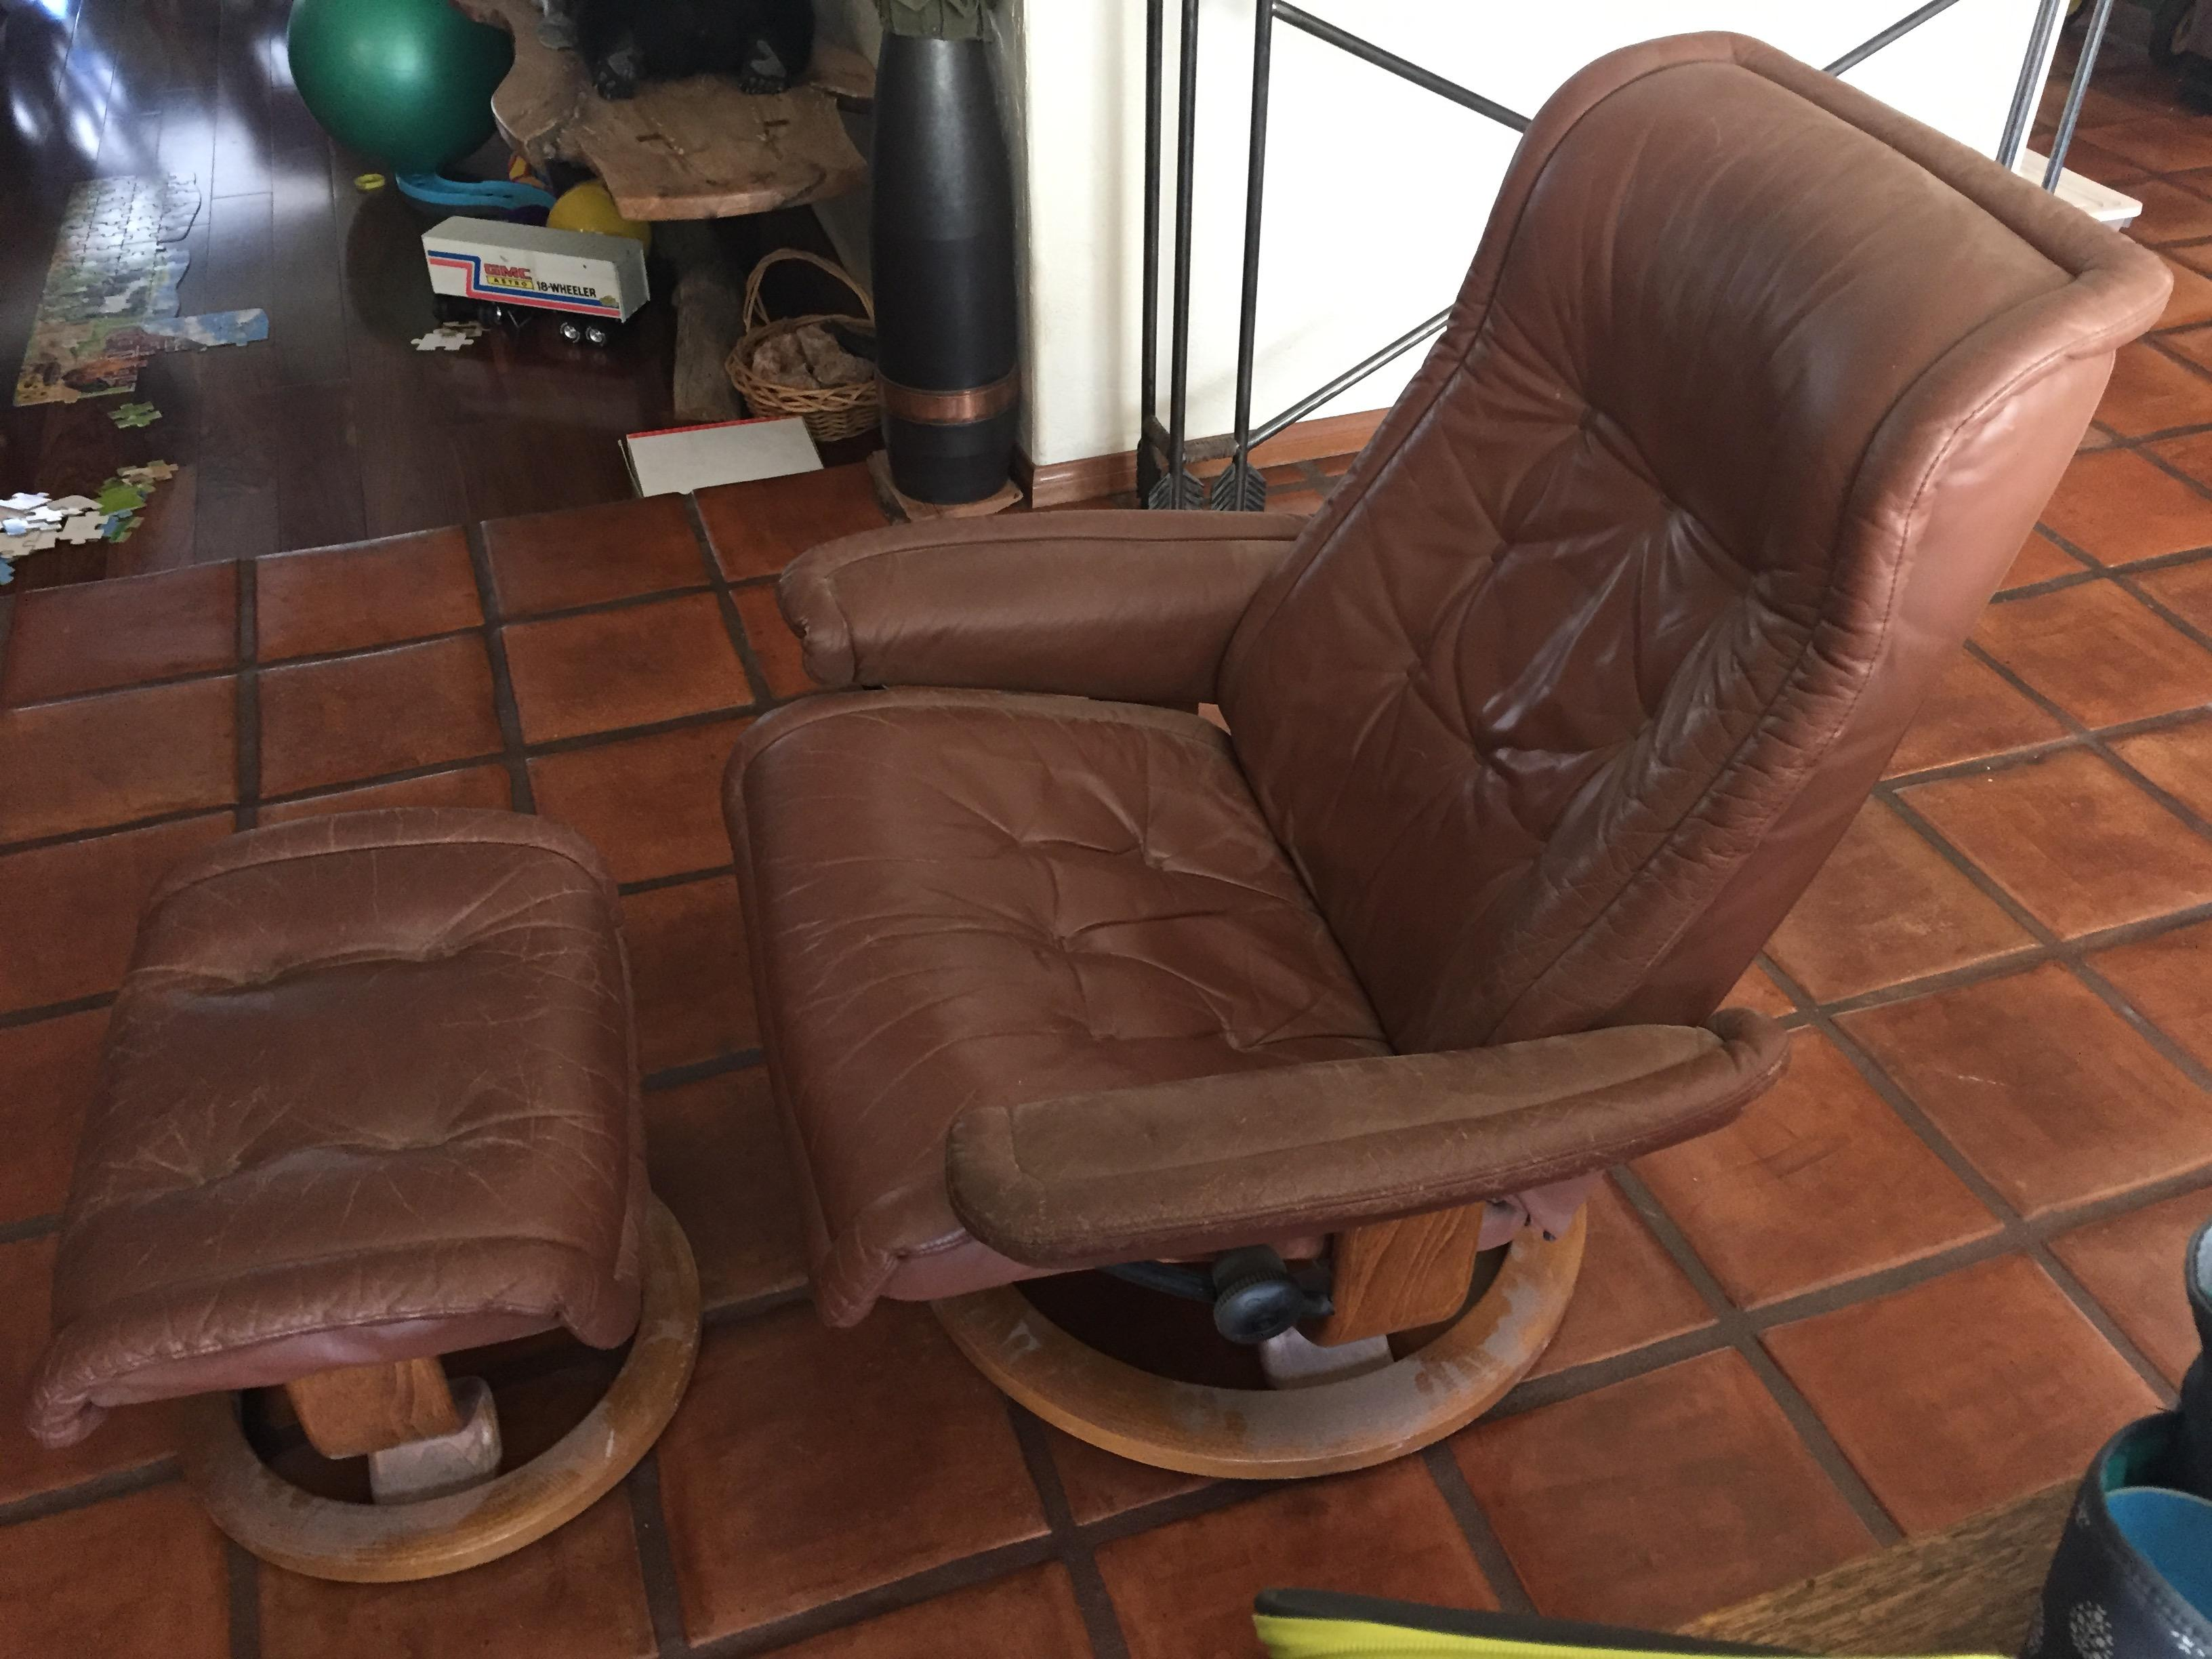 Stressless Video Scored An Ekornes Stressless Recliner For 5 99 At The